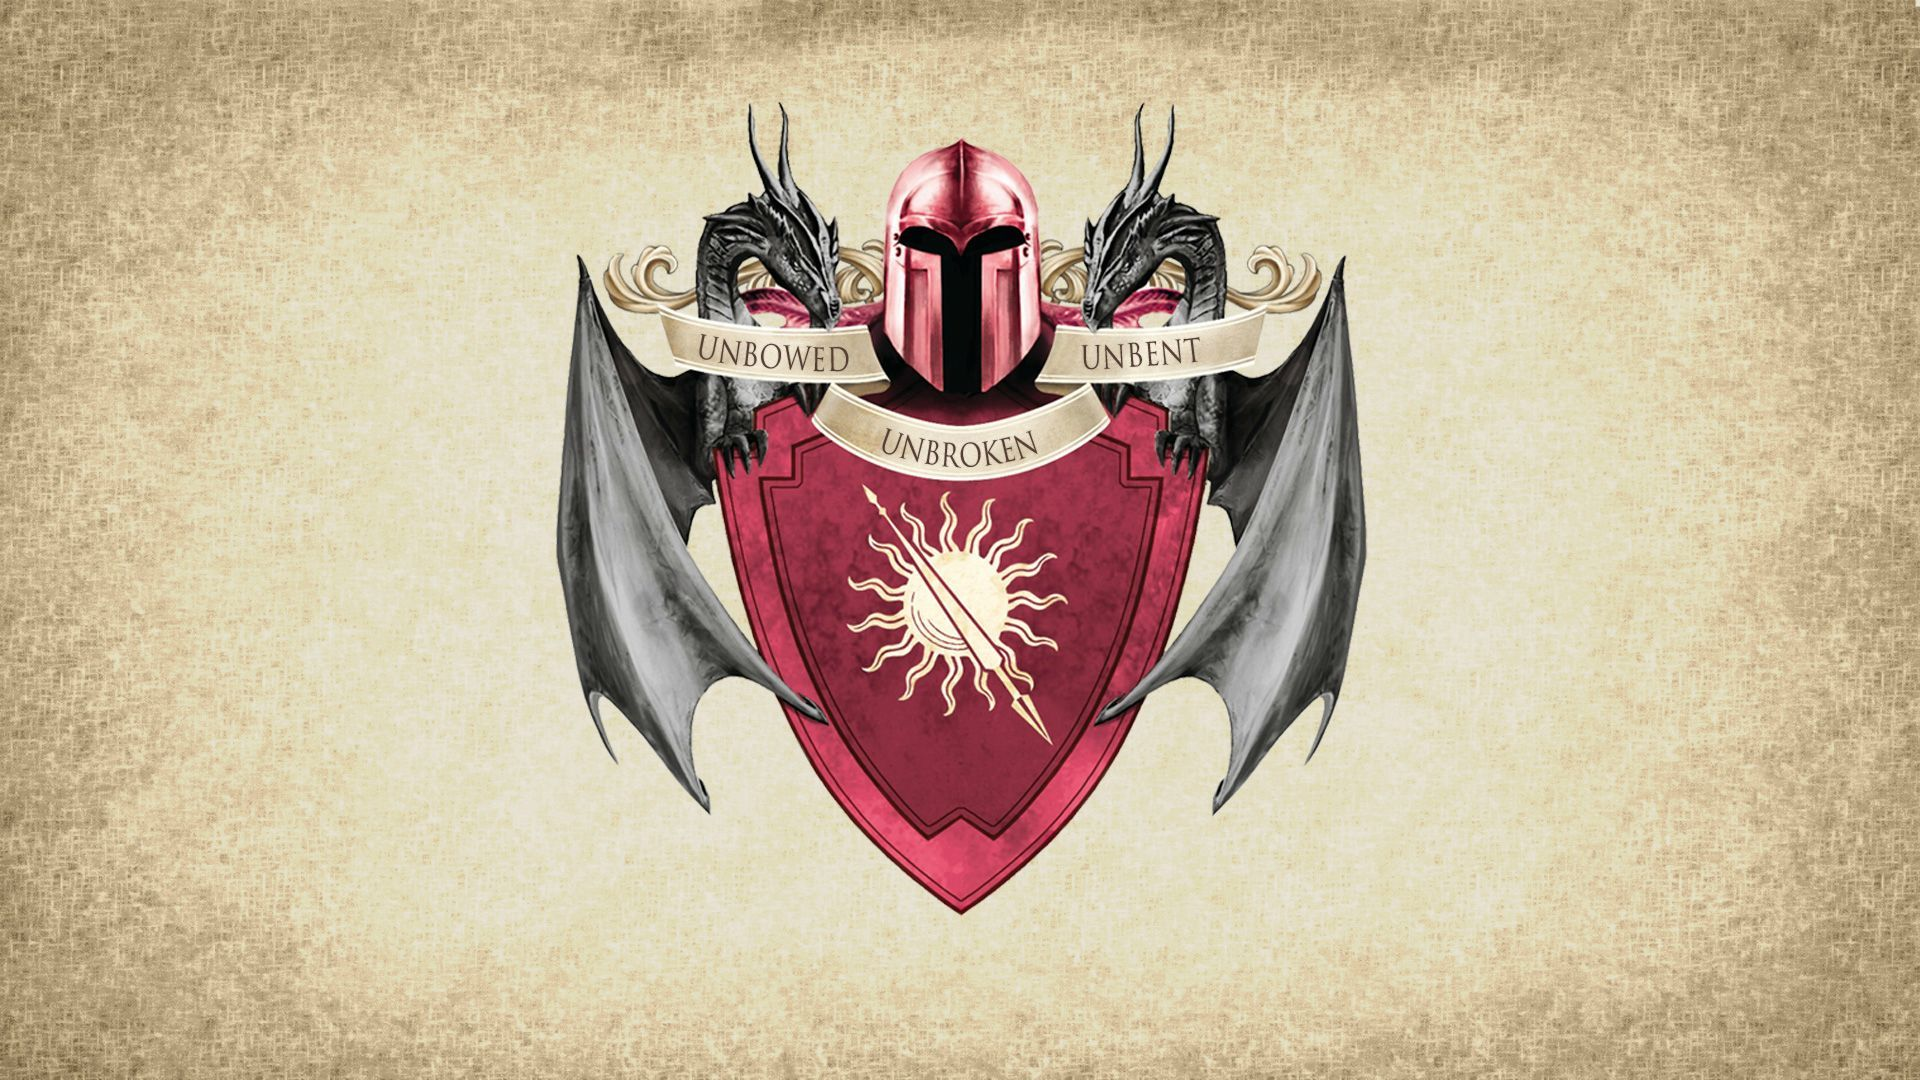 game-of-thrones-house-sigils-German-style-by-Kevin-Hatch_8.jpg